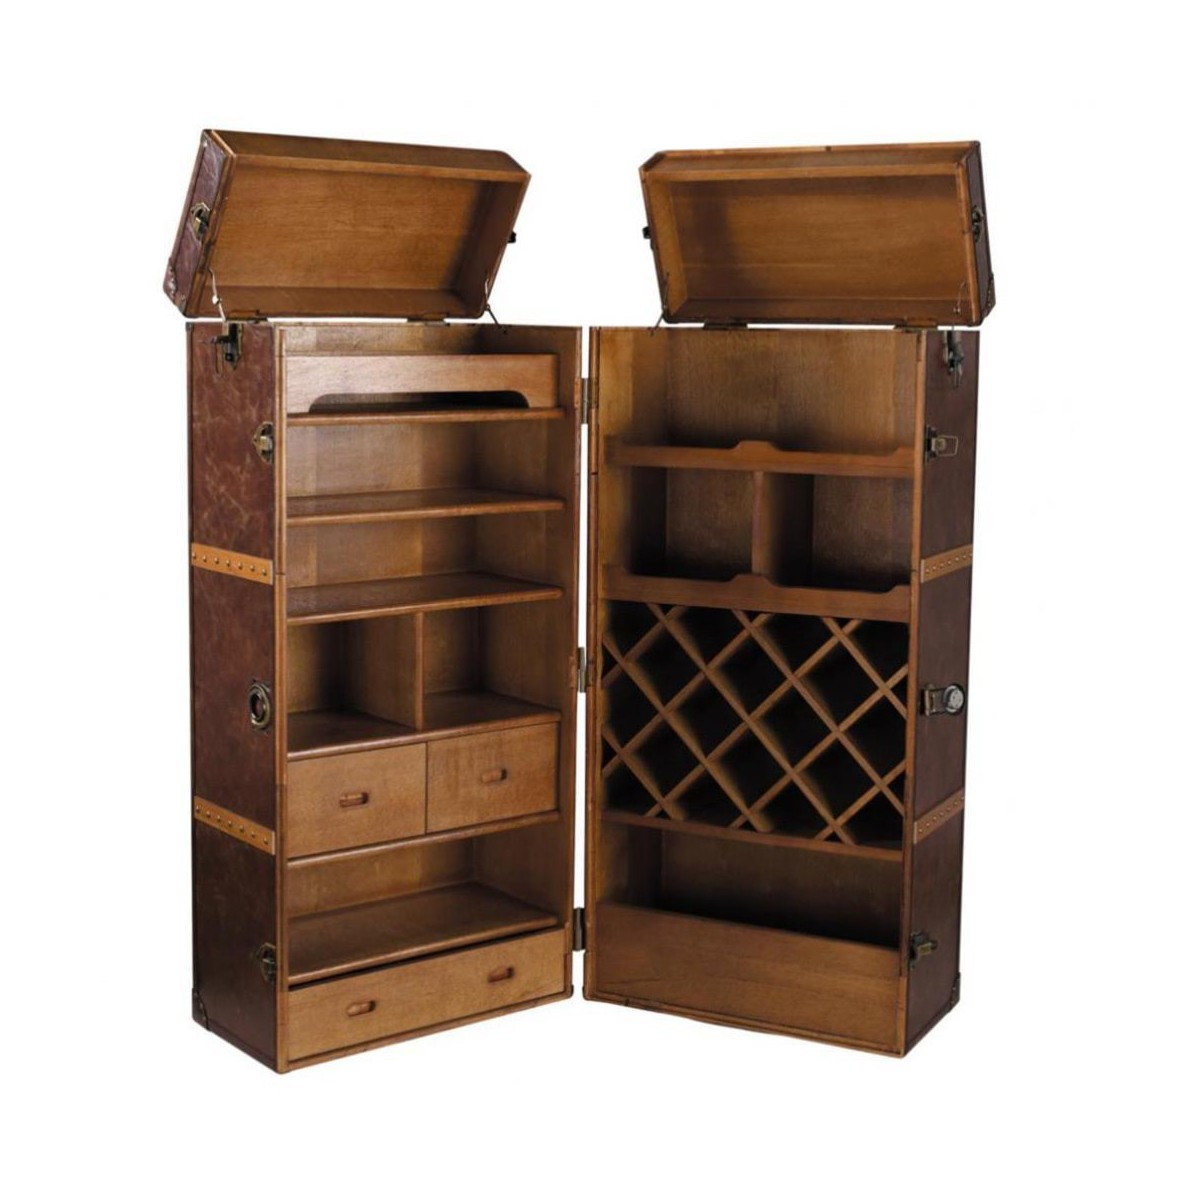 meuble de bar avec tiroirs en bois et cuir l 60 cm. Black Bedroom Furniture Sets. Home Design Ideas